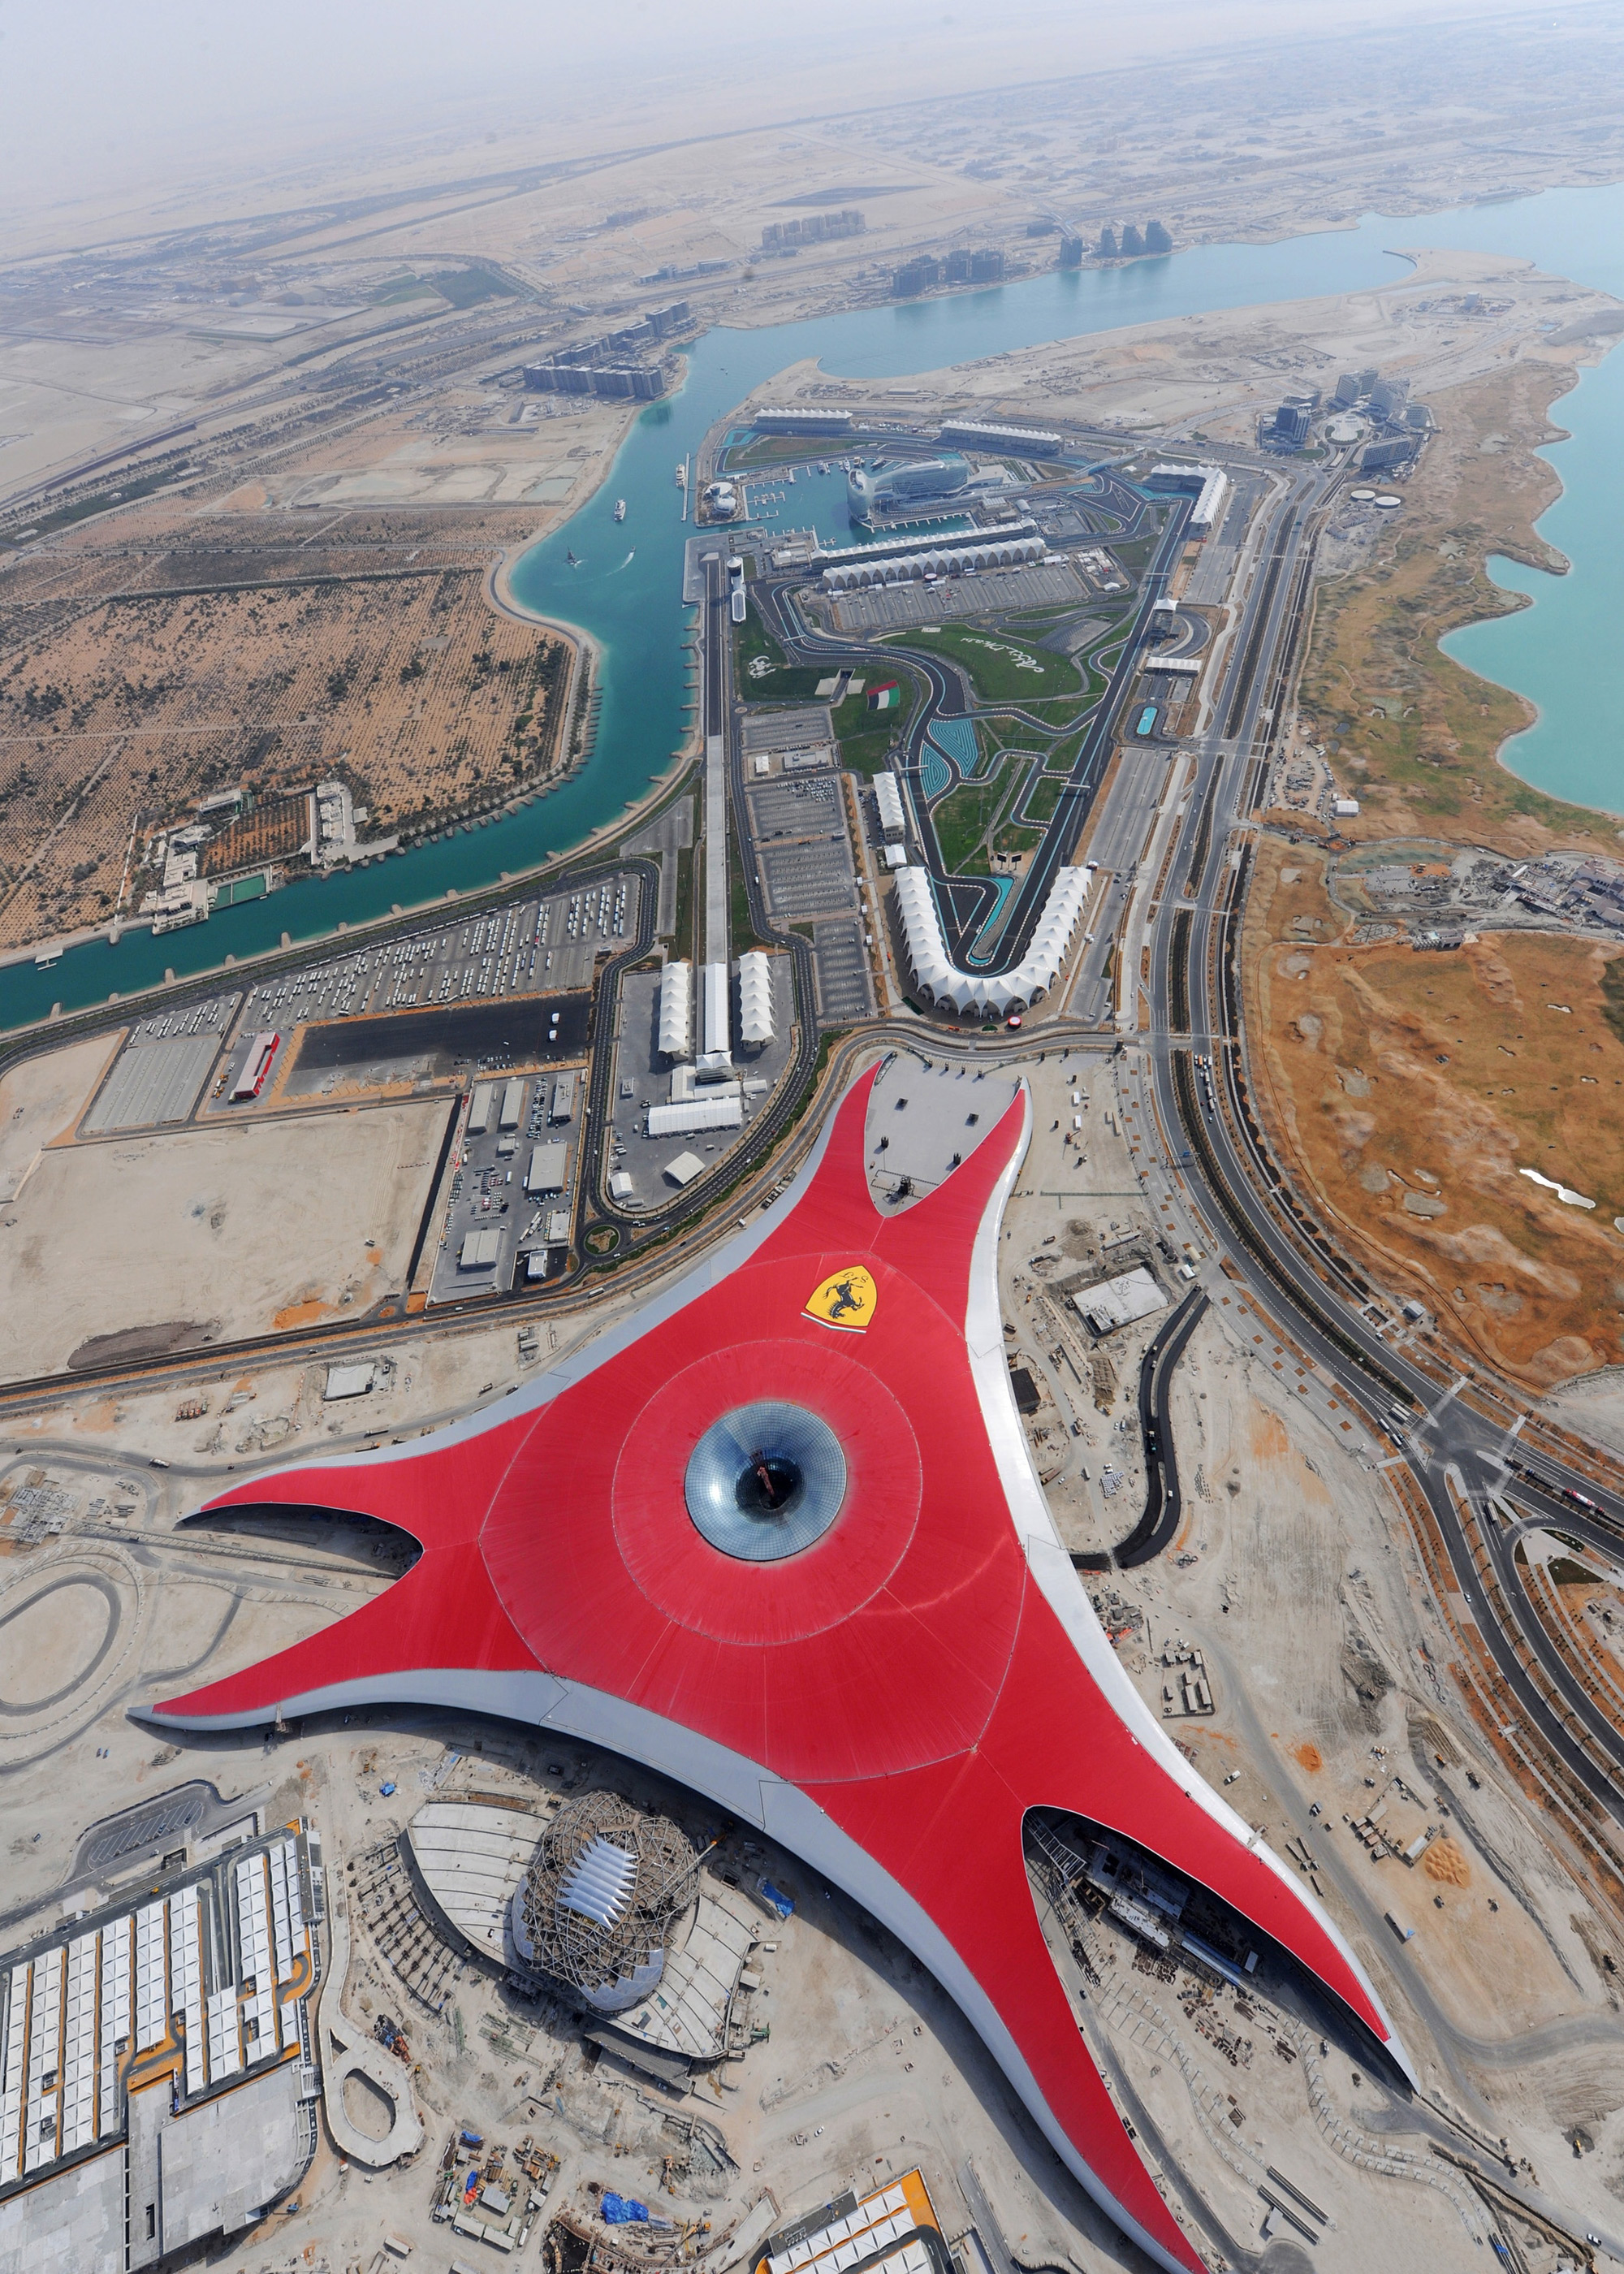 ferrari world abu dhabi opening in 2010. Cars Review. Best American Auto & Cars Review